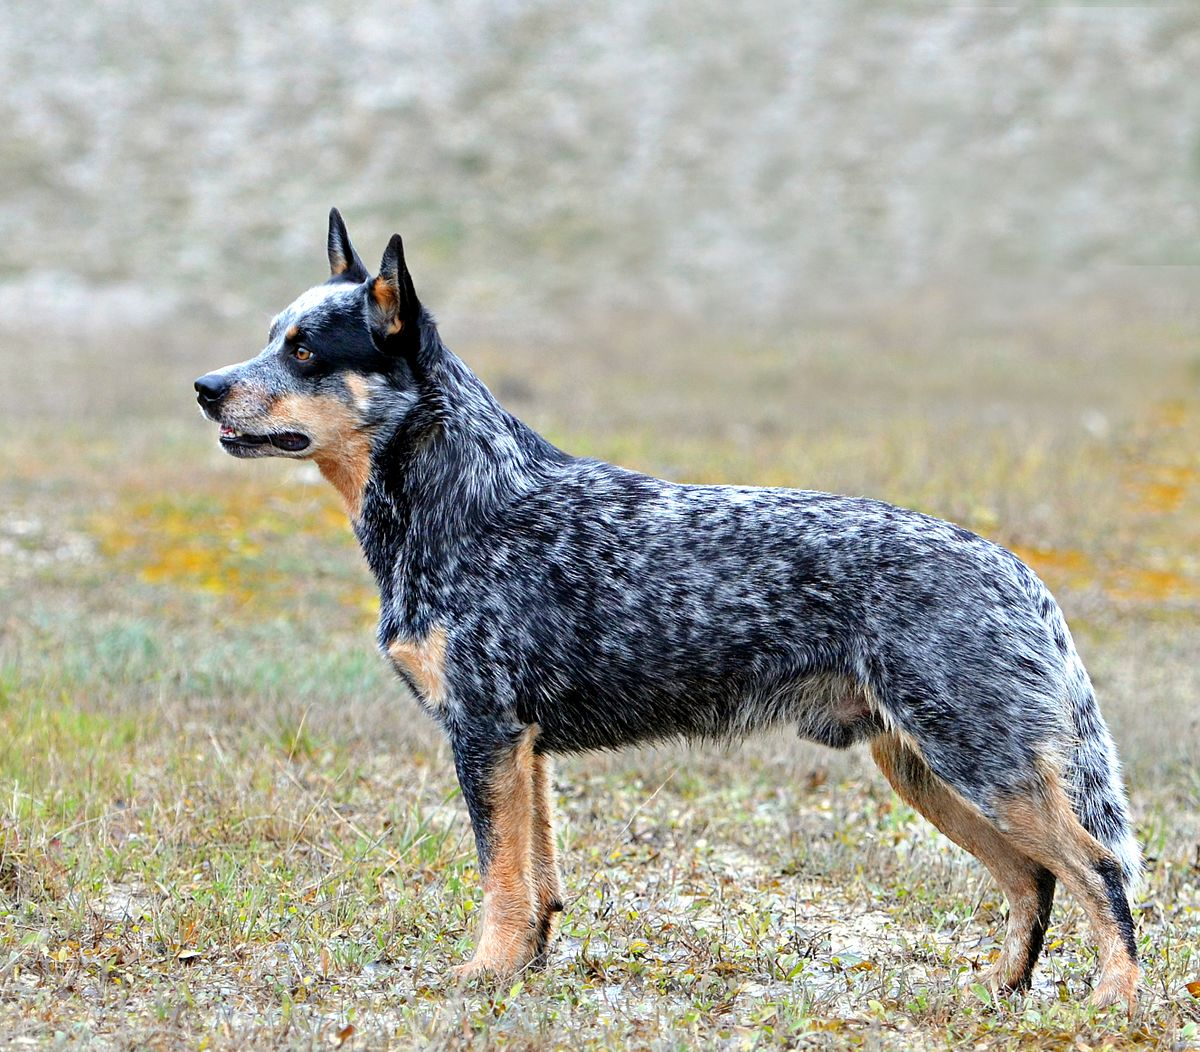 Australian Cattle Dog I Was Told Our Harley Is Part Australian Shepherd And